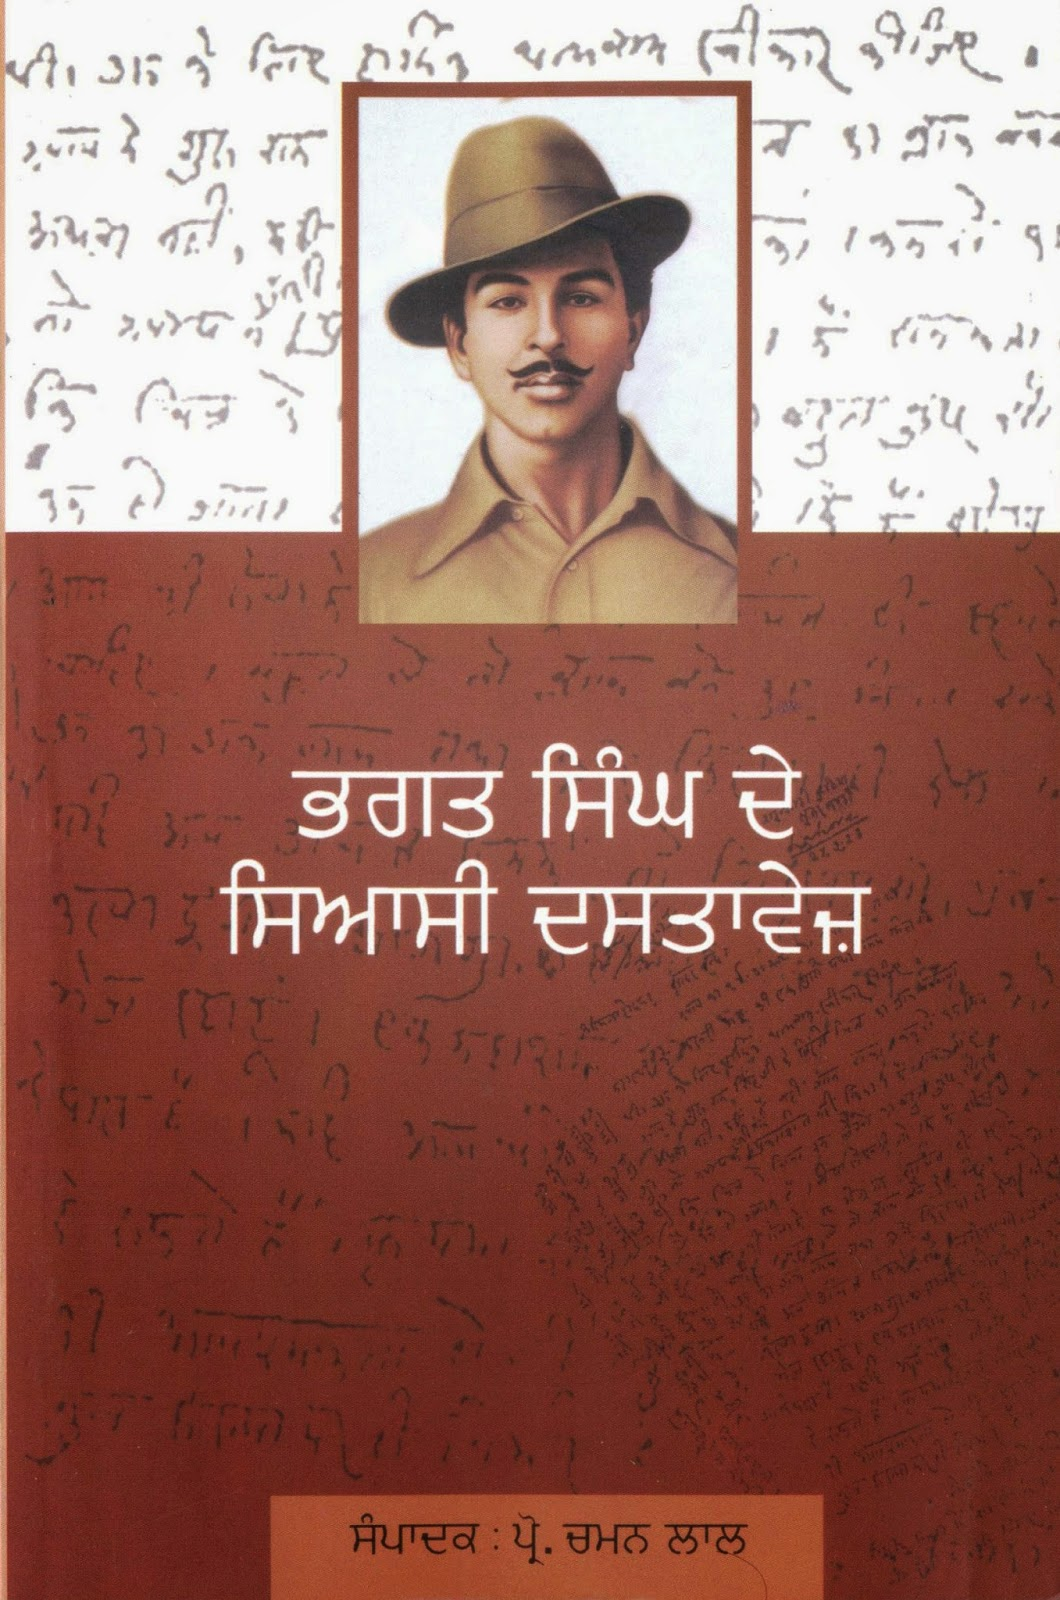 bhagat singh essay shaheed bhagat singh full movie hindi animated  bhagat singh study chaman lal complete list of my books on bhagat singh and other revolutionaries